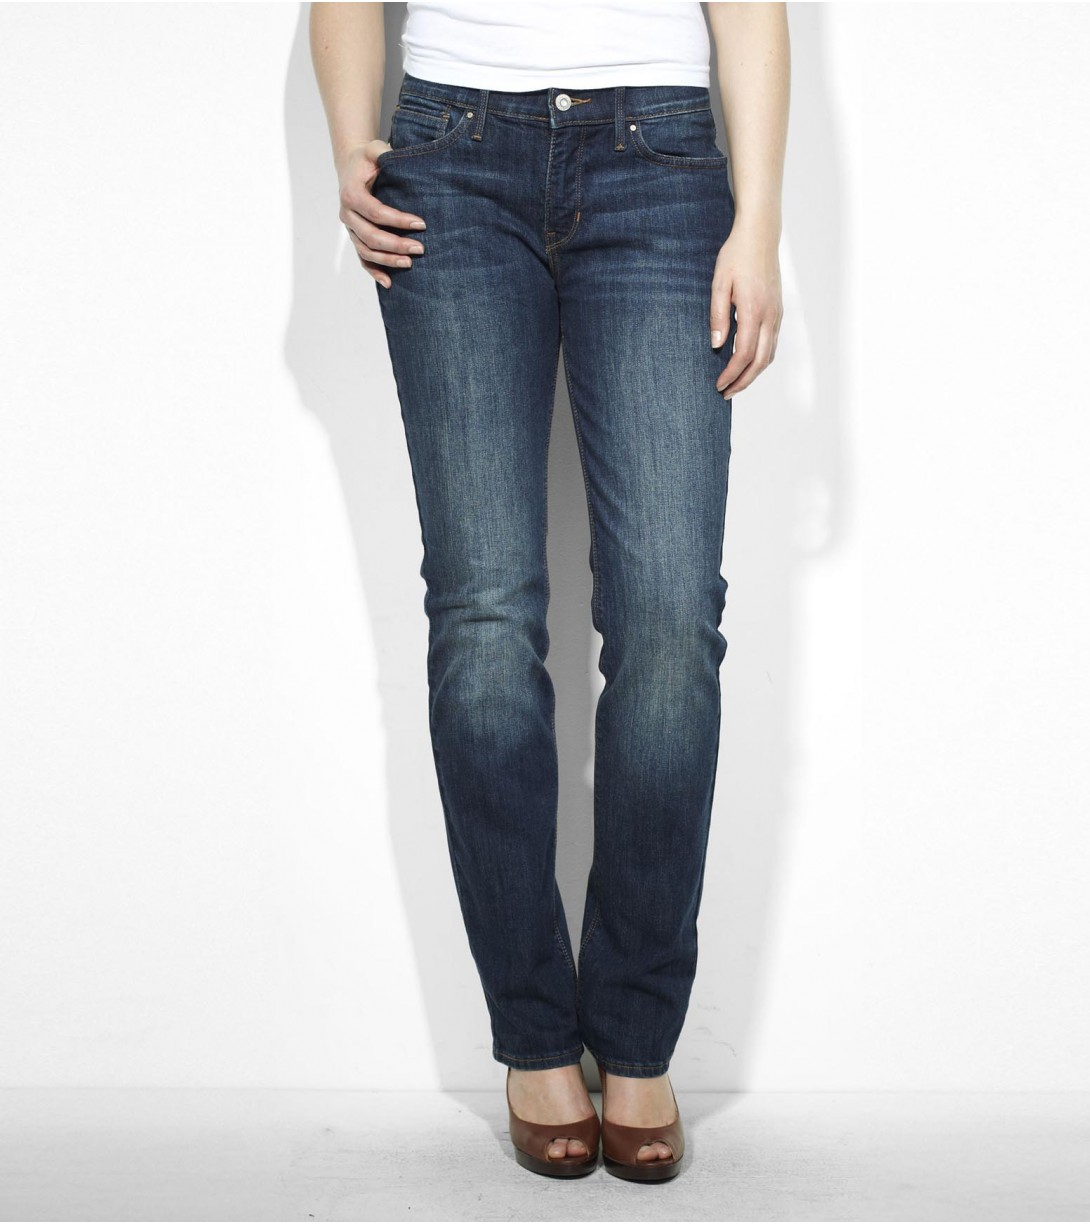 Jeans sapphire 5